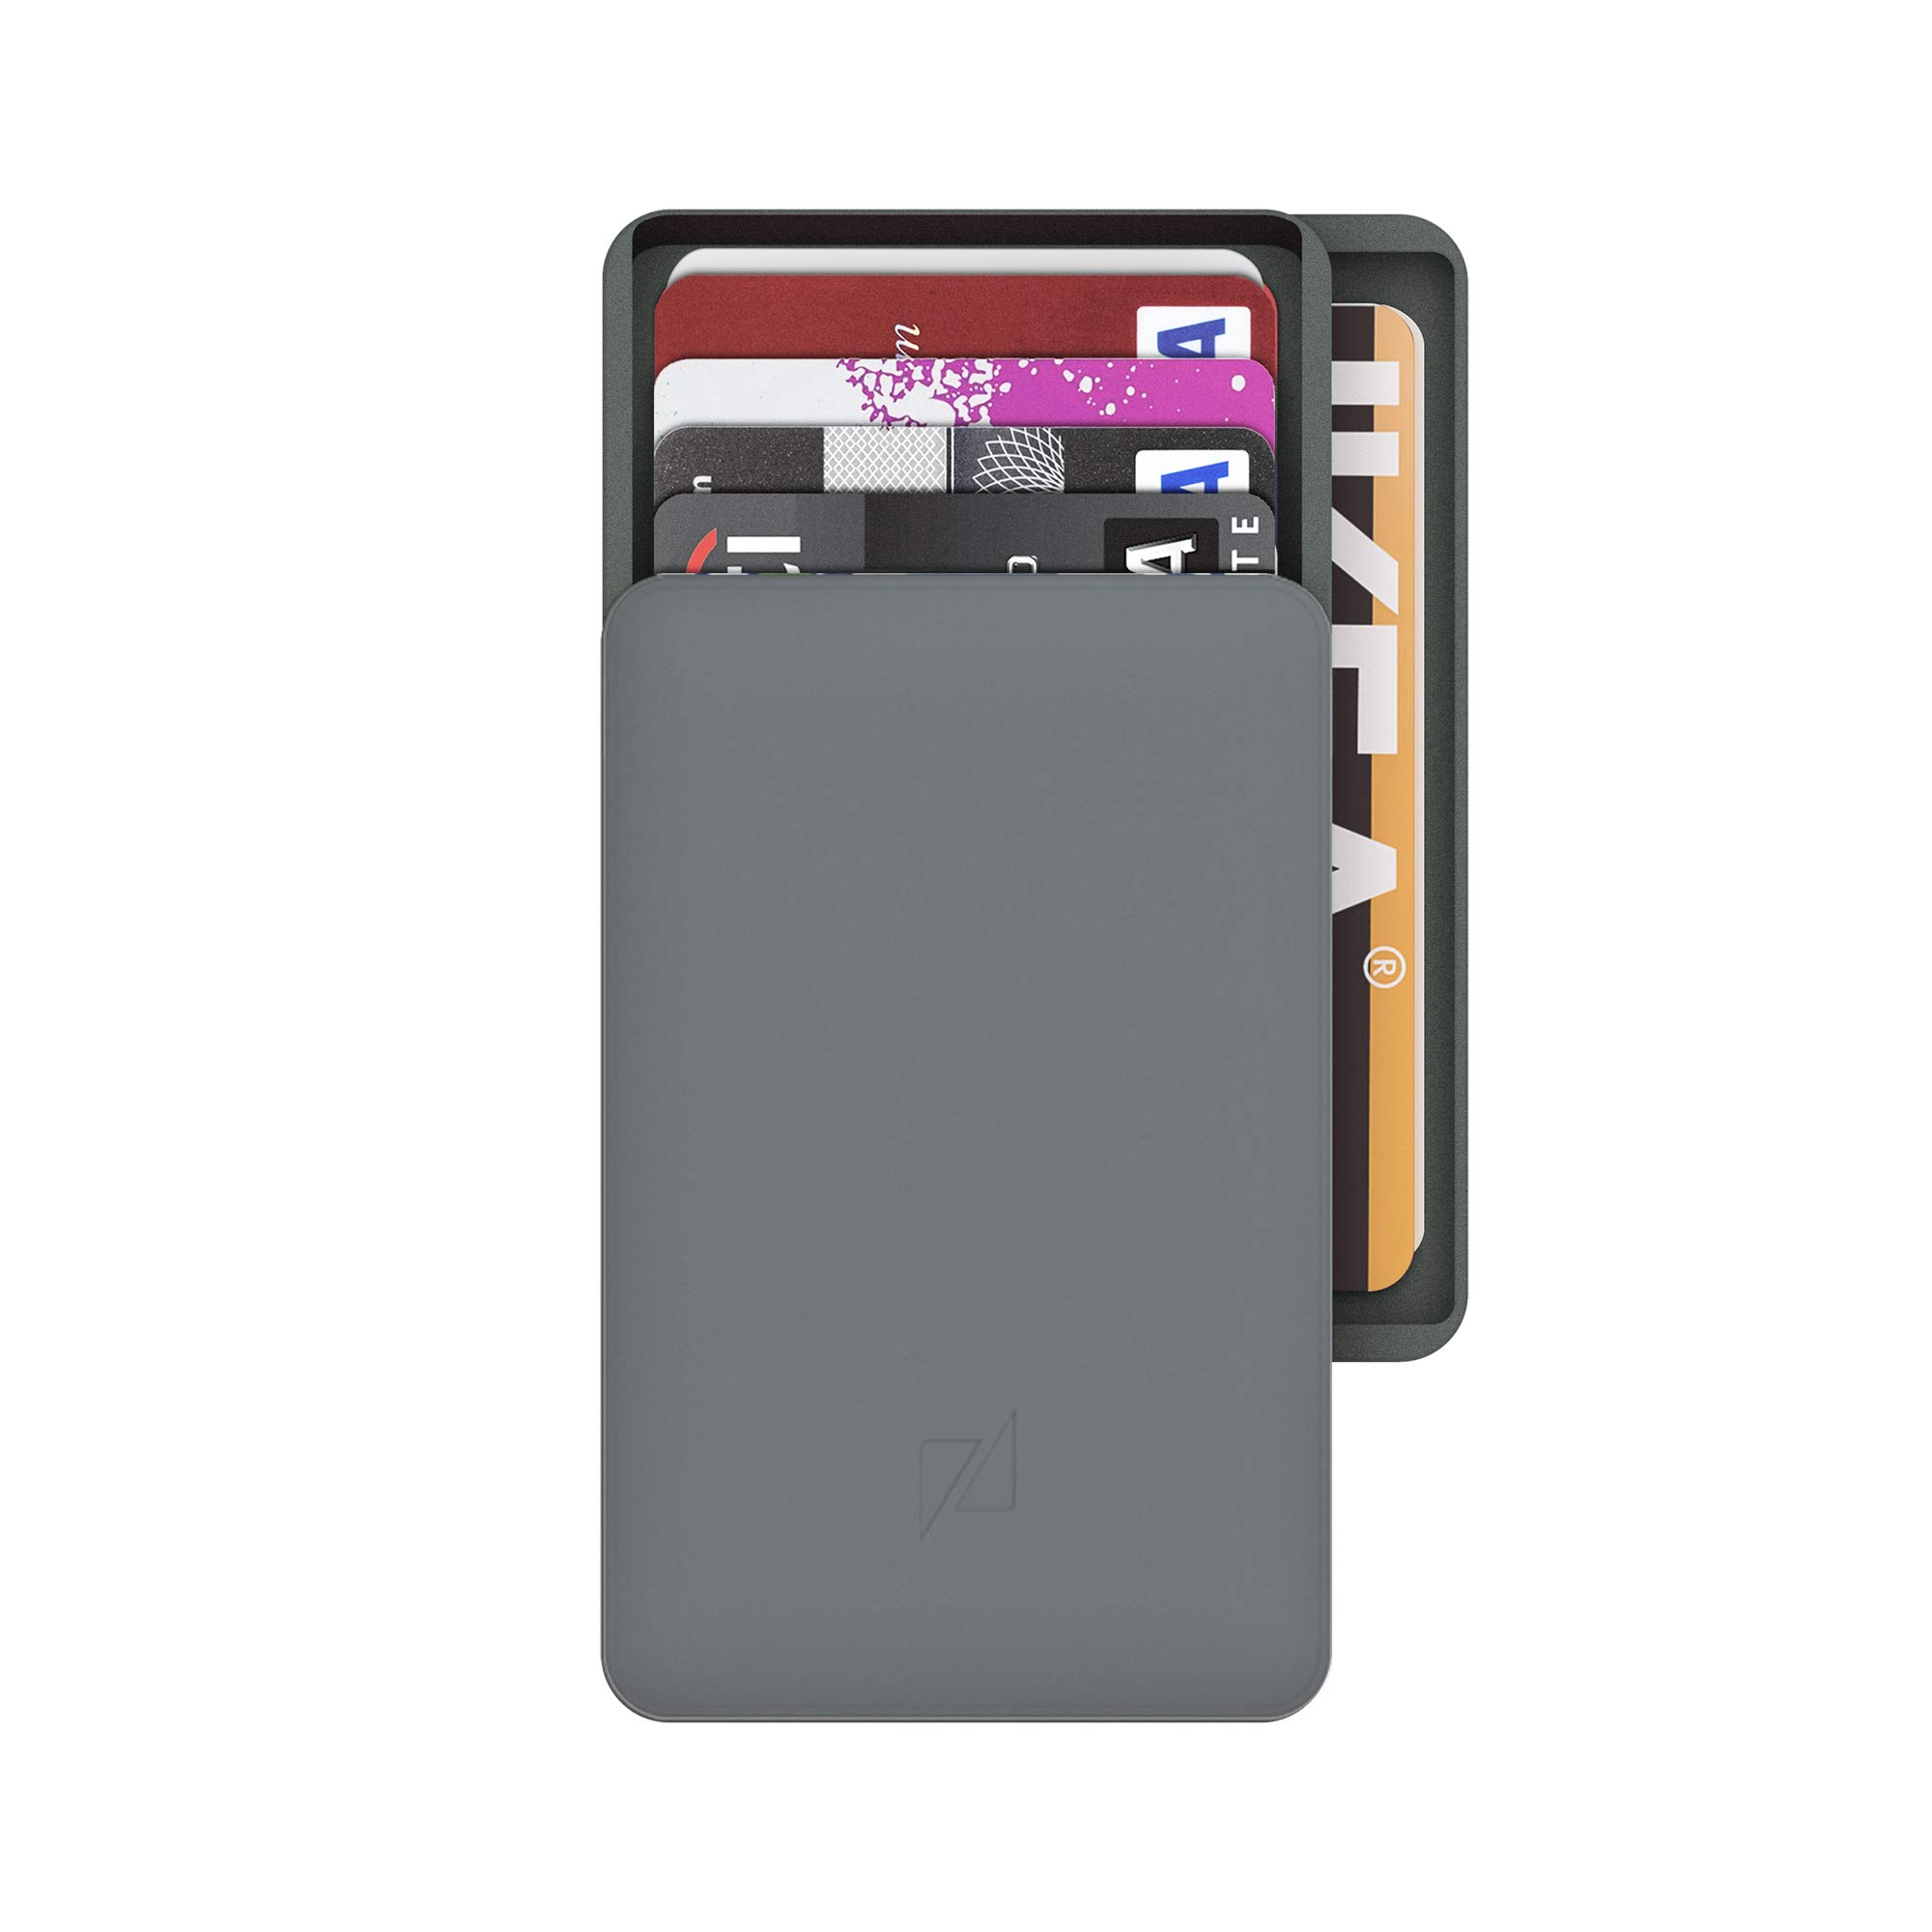 Zenlet 2+|Aluminum RFID Blocking Wallet with double compartments (Space Grey)